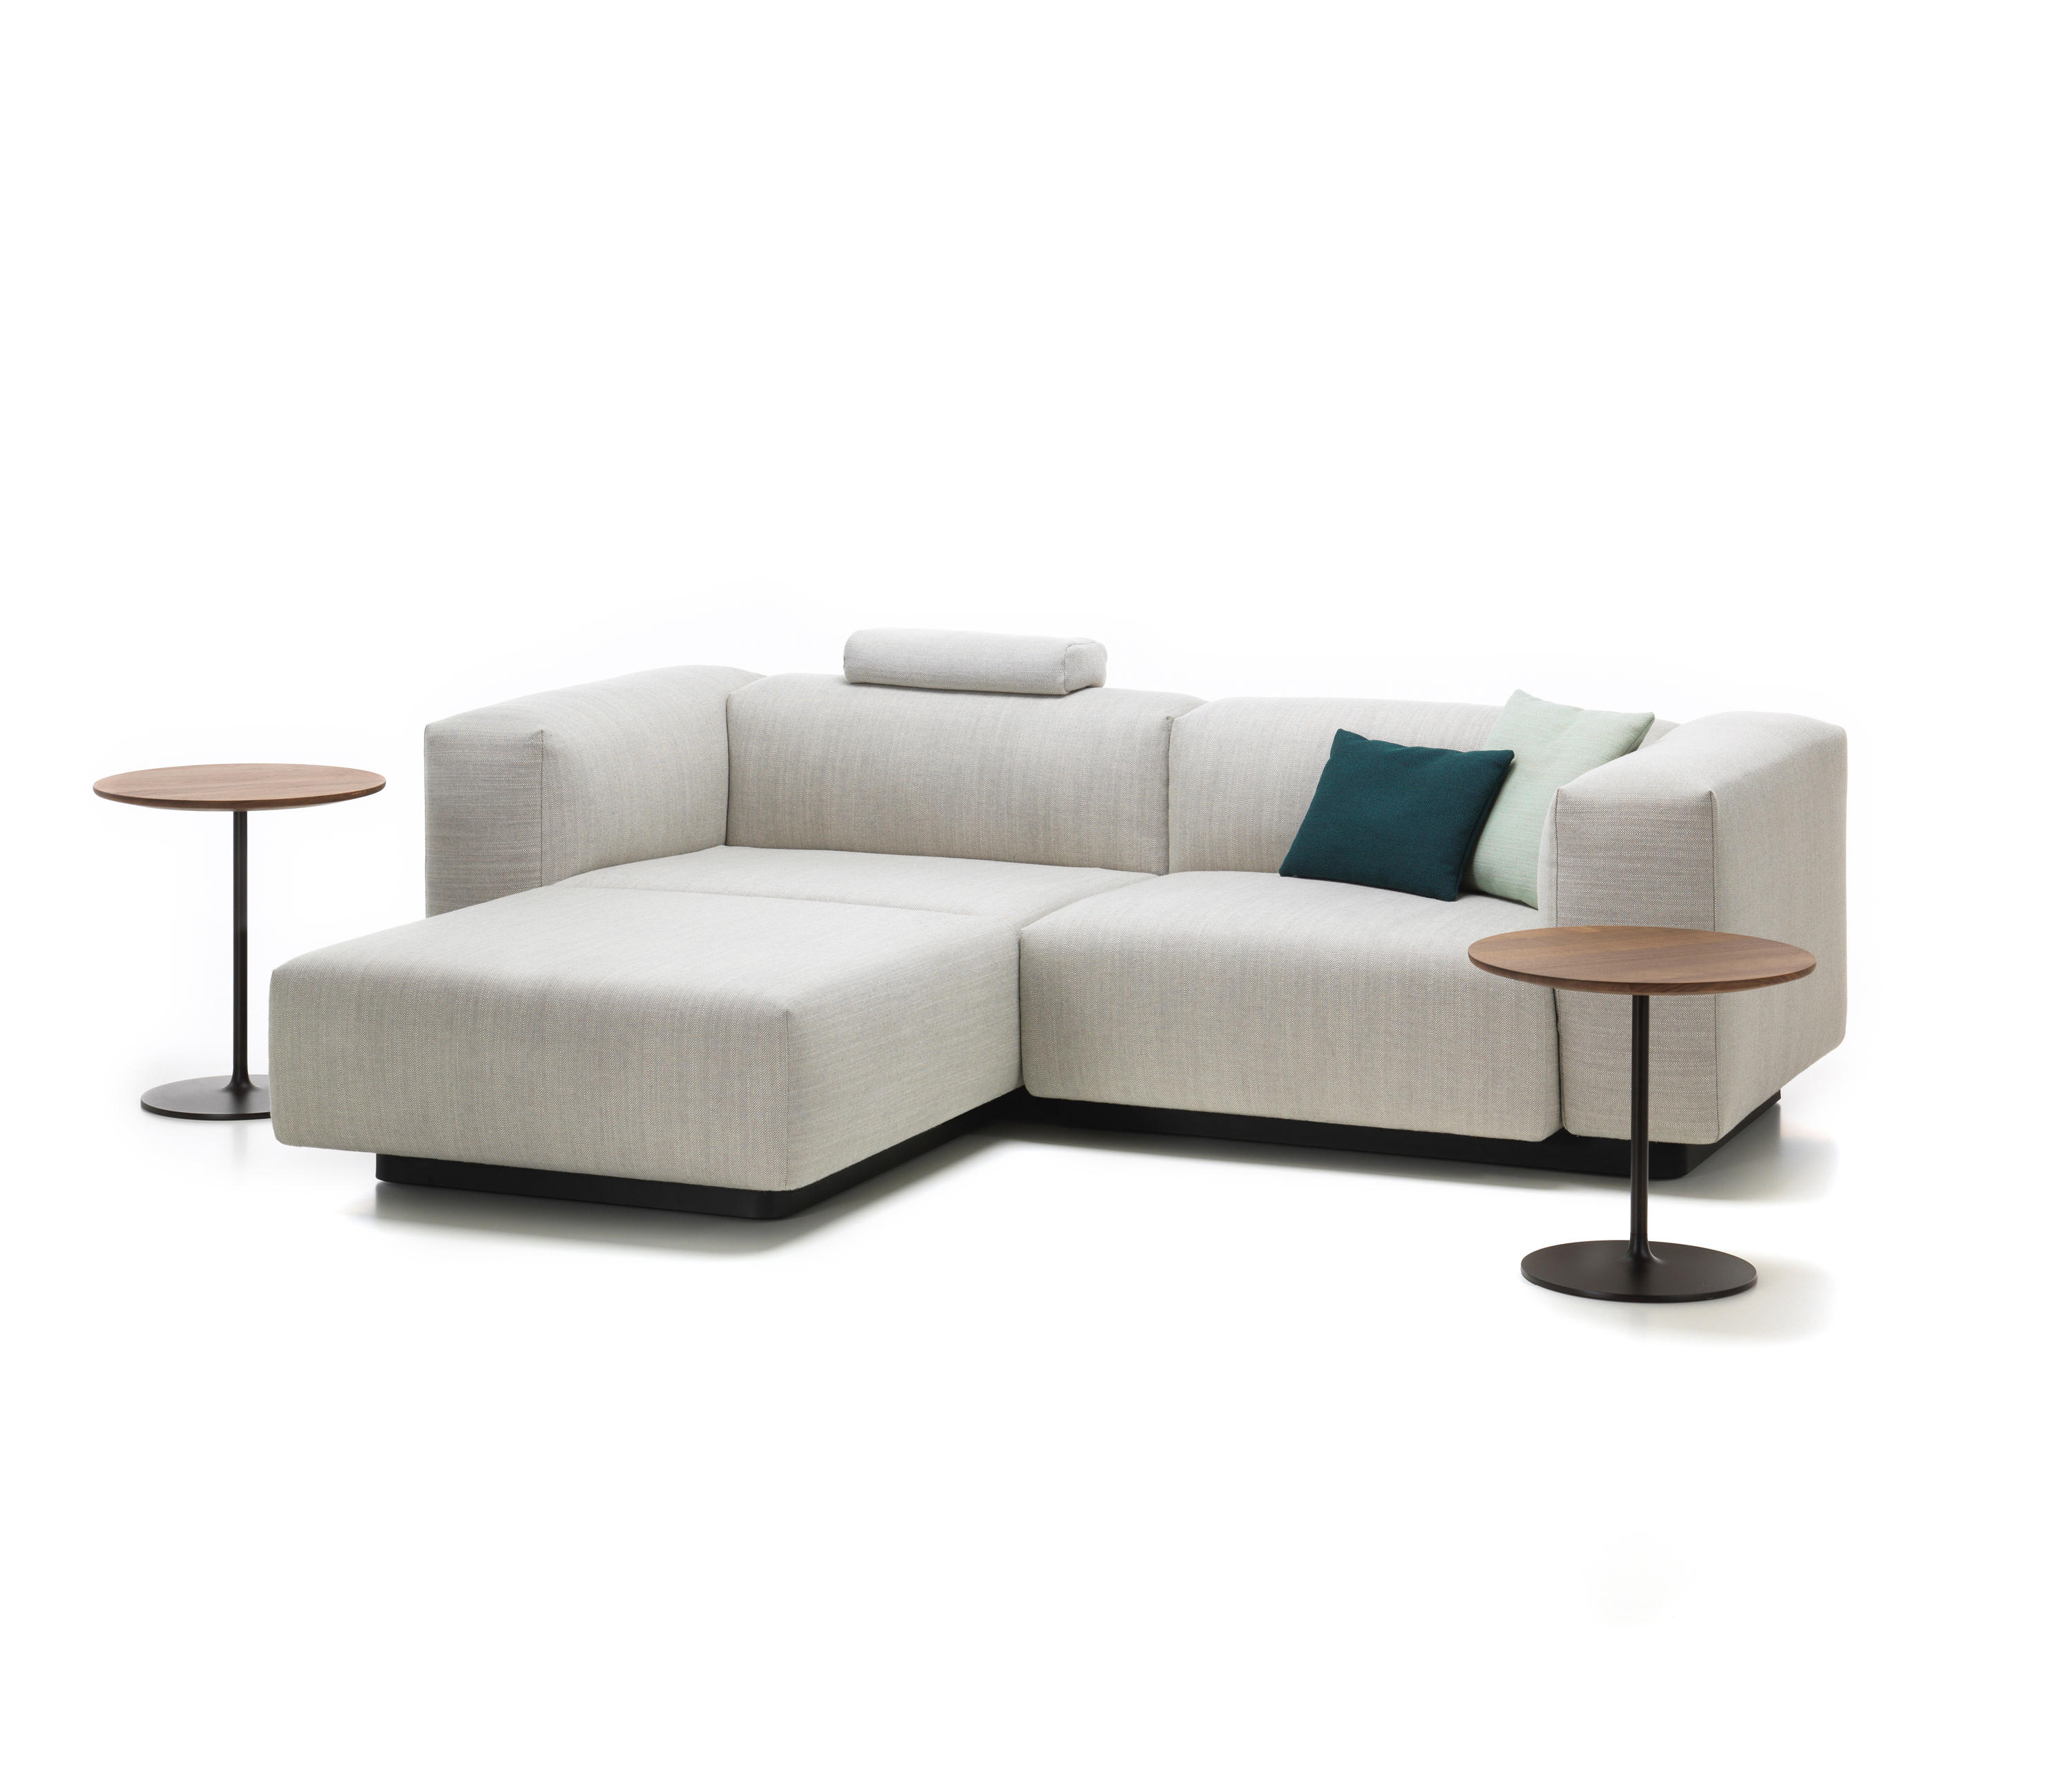 2 seater sofa with chaise sofa fascinating 2 seater chaise for 2 seater sofa with chaise